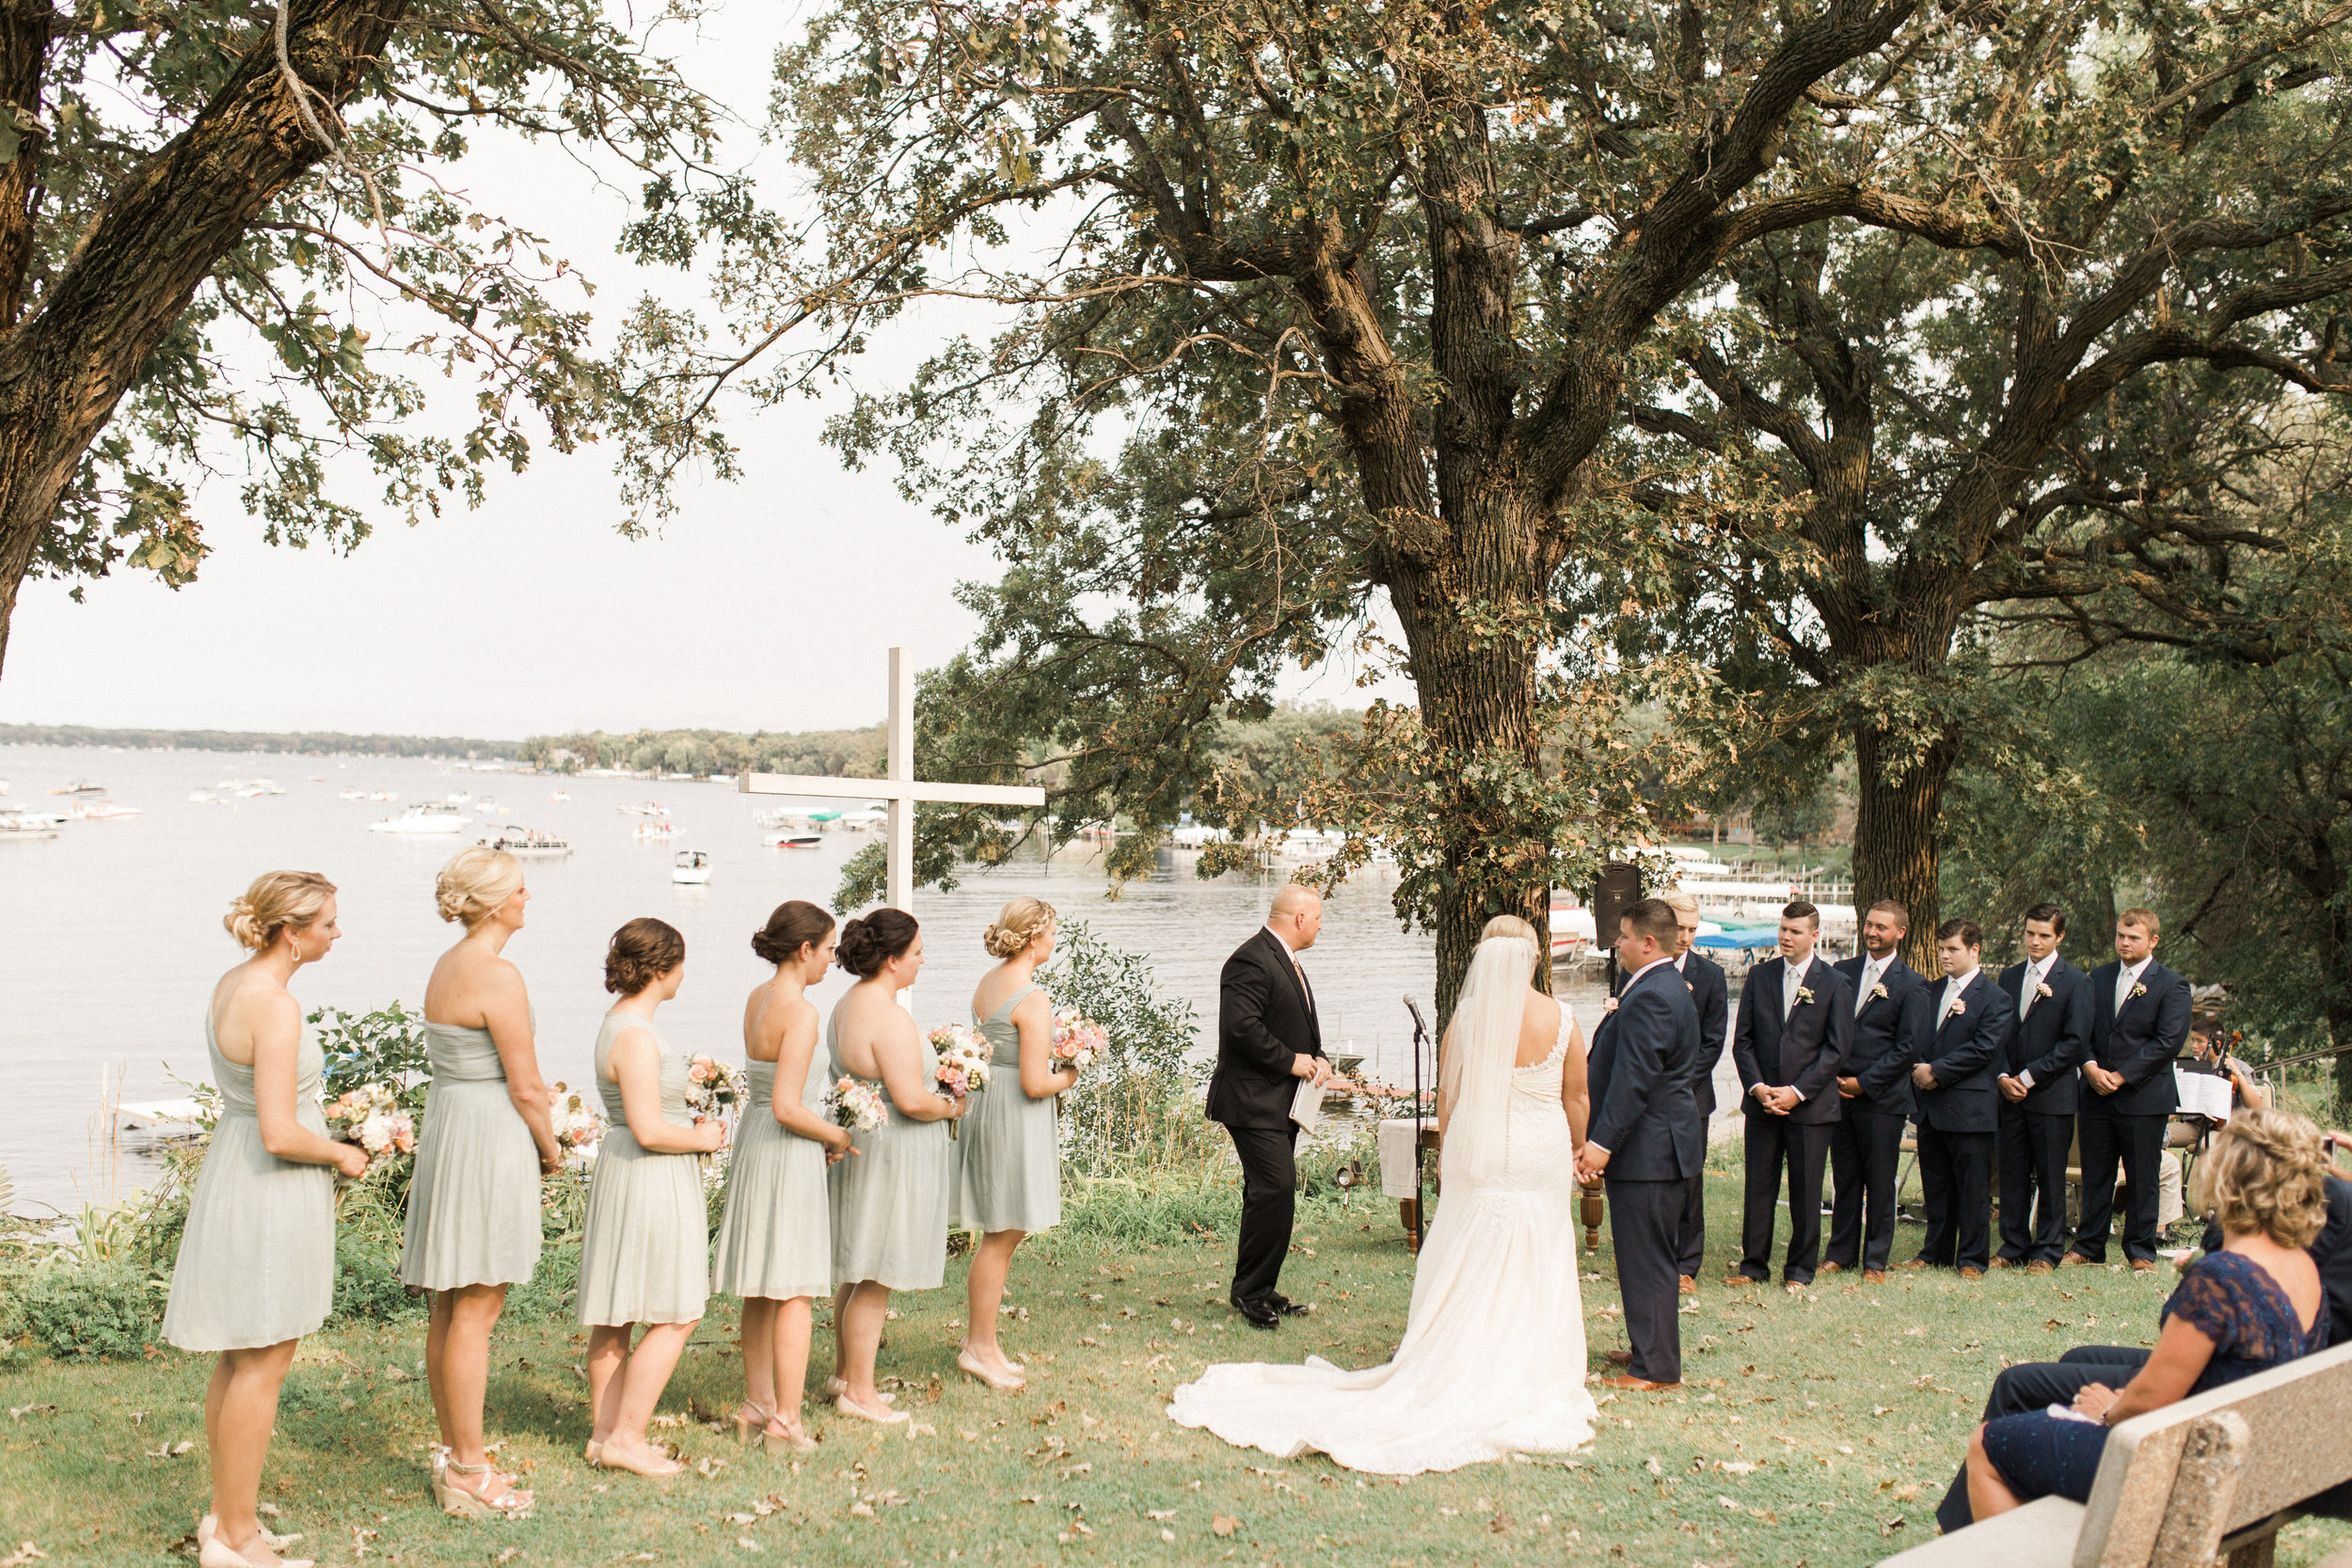 lakeside-ceremony-okoboji-iowa-bridal-party